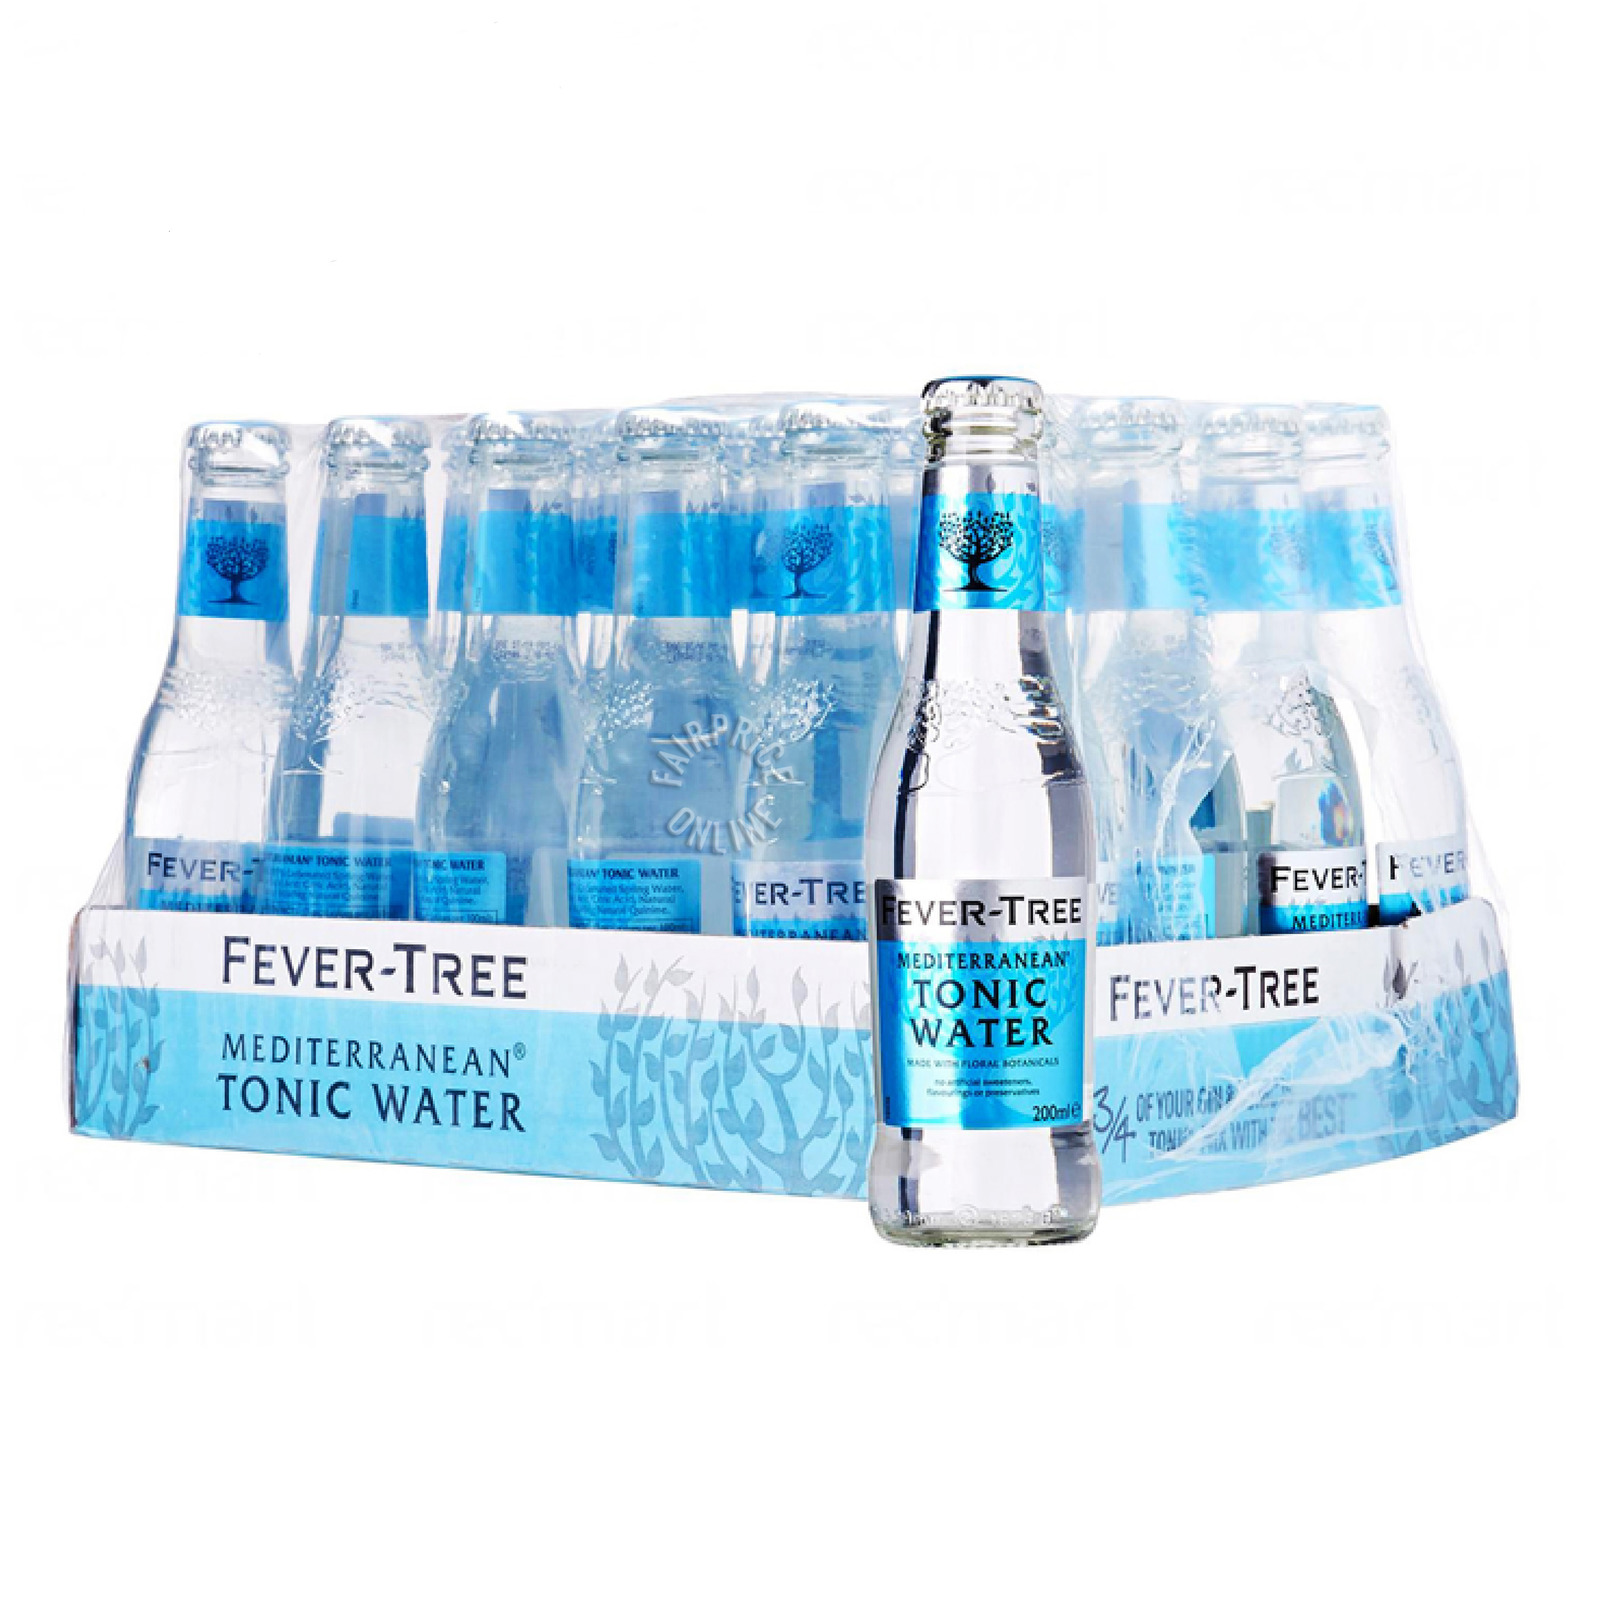 Fever-Tree Bottle Tonic Water - Mediterranean